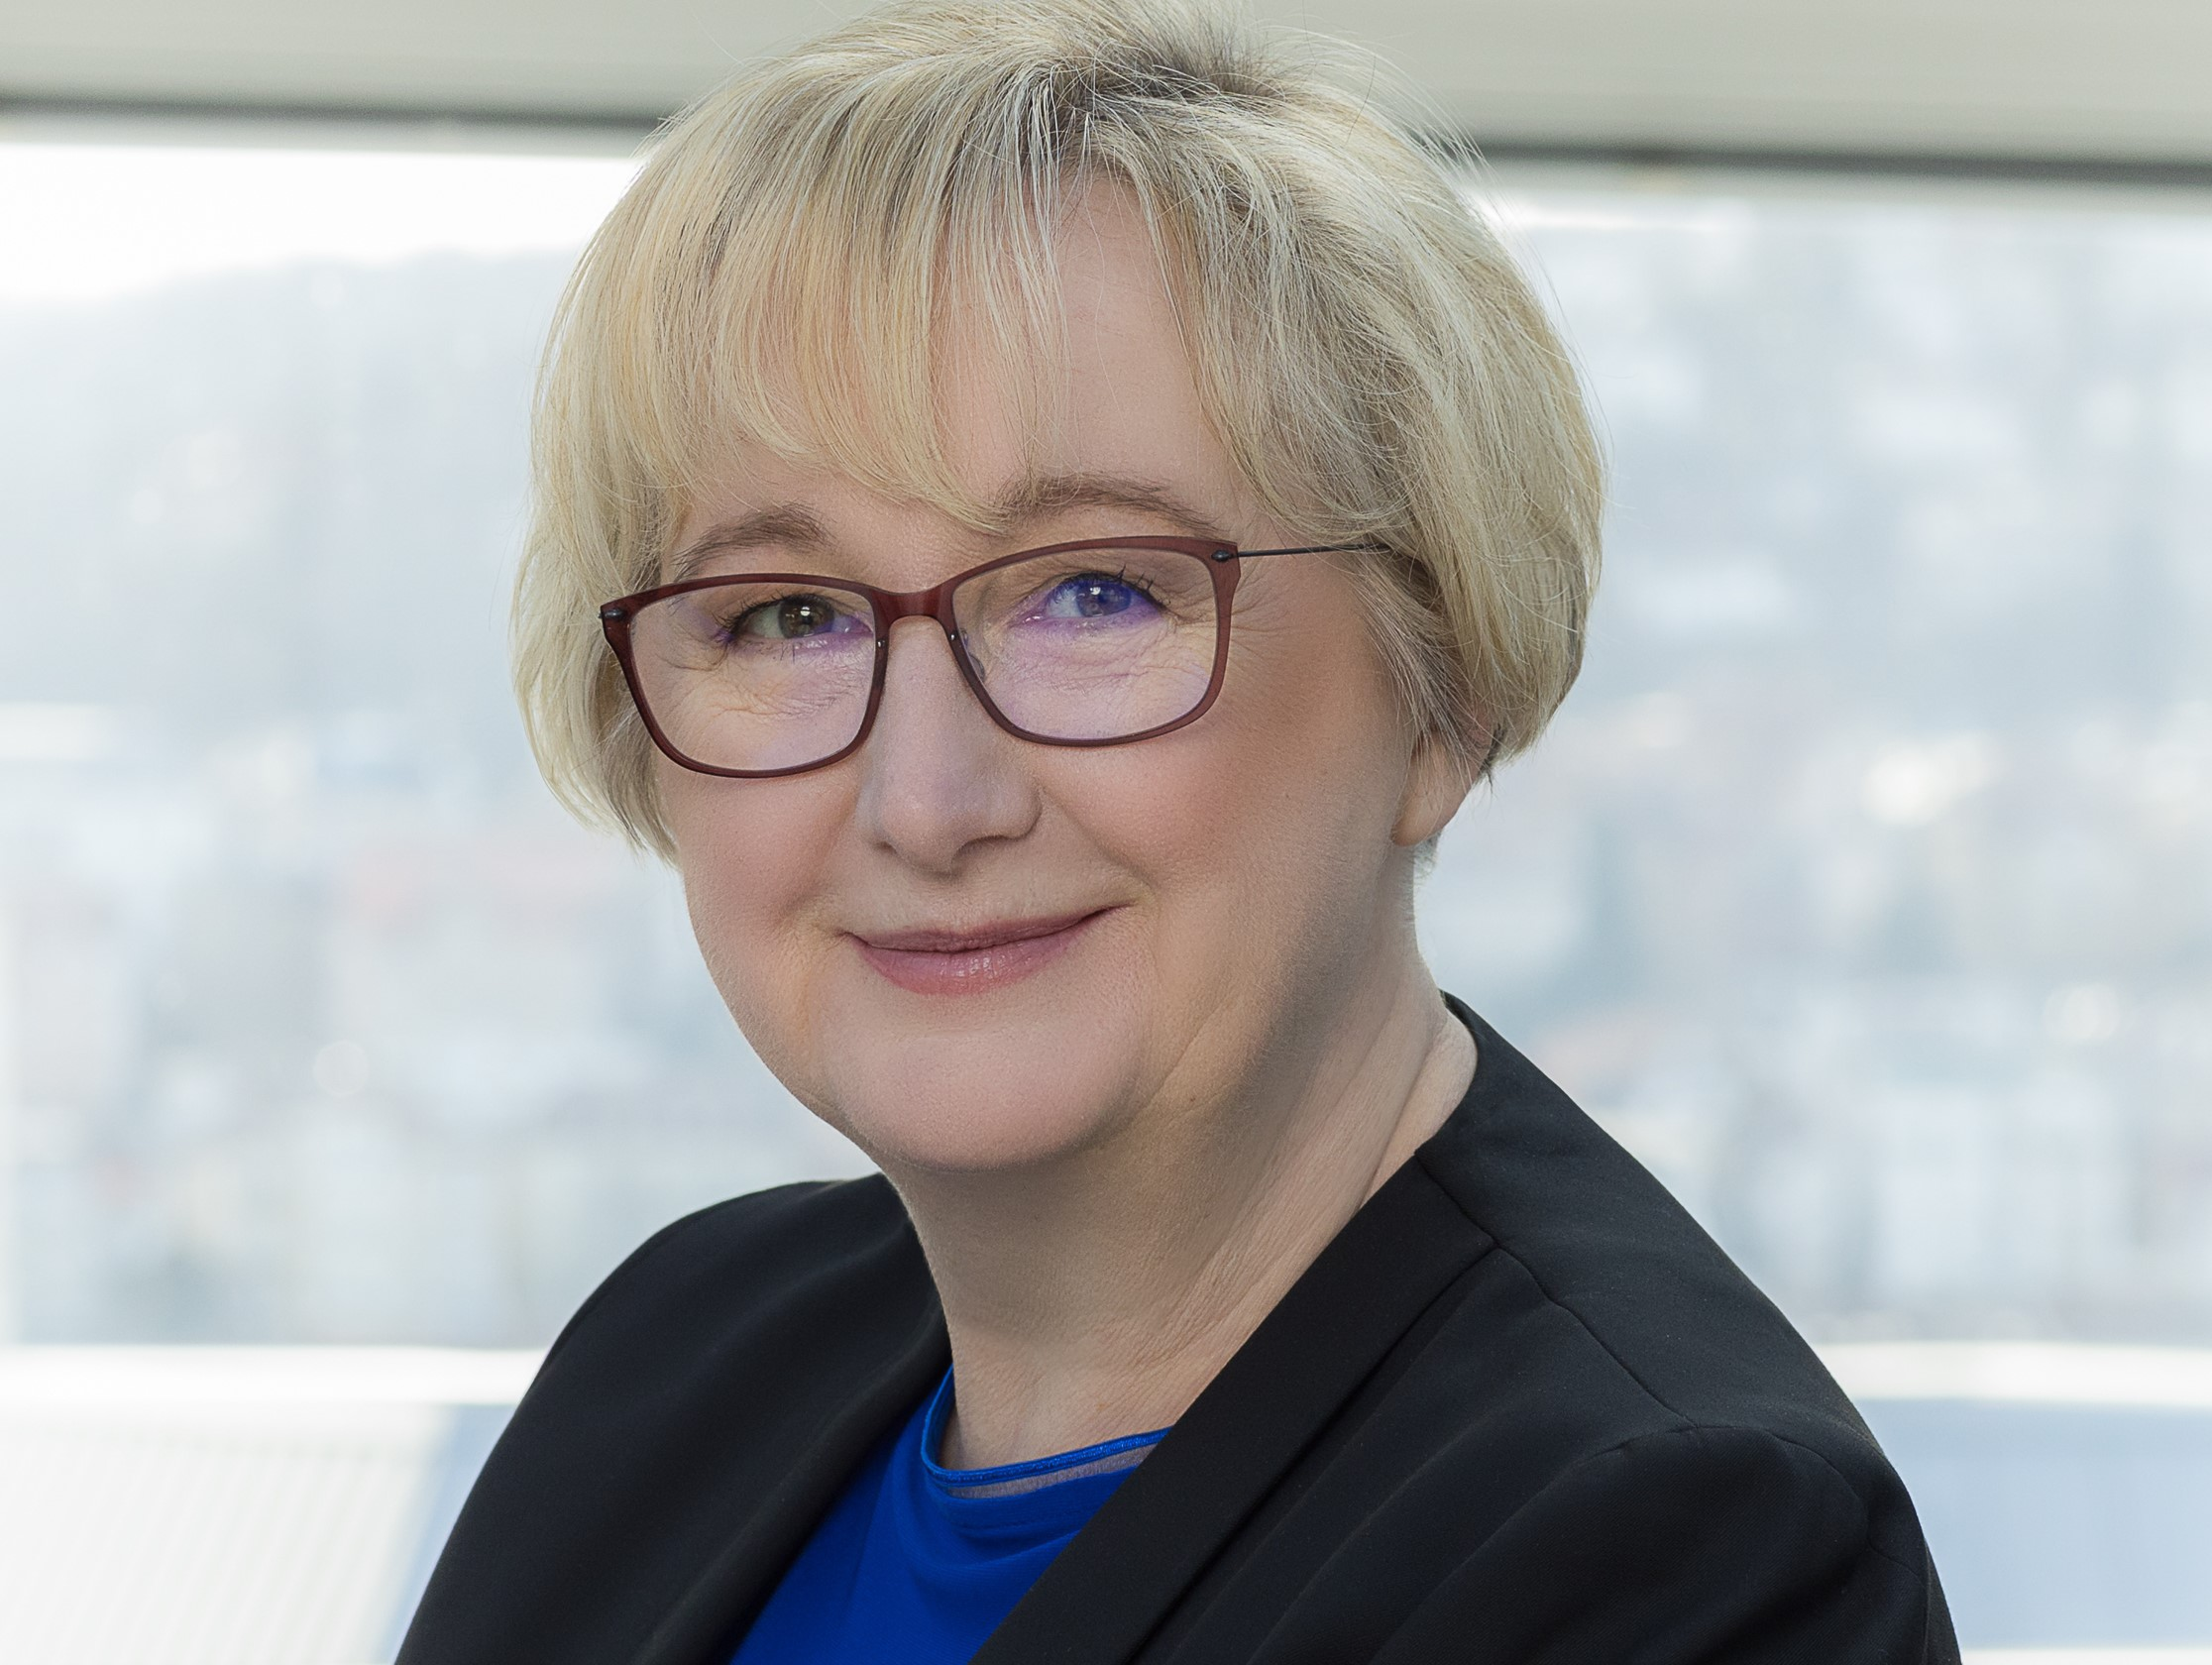 Ministerin Theresia Bauer Baden-Württemberg